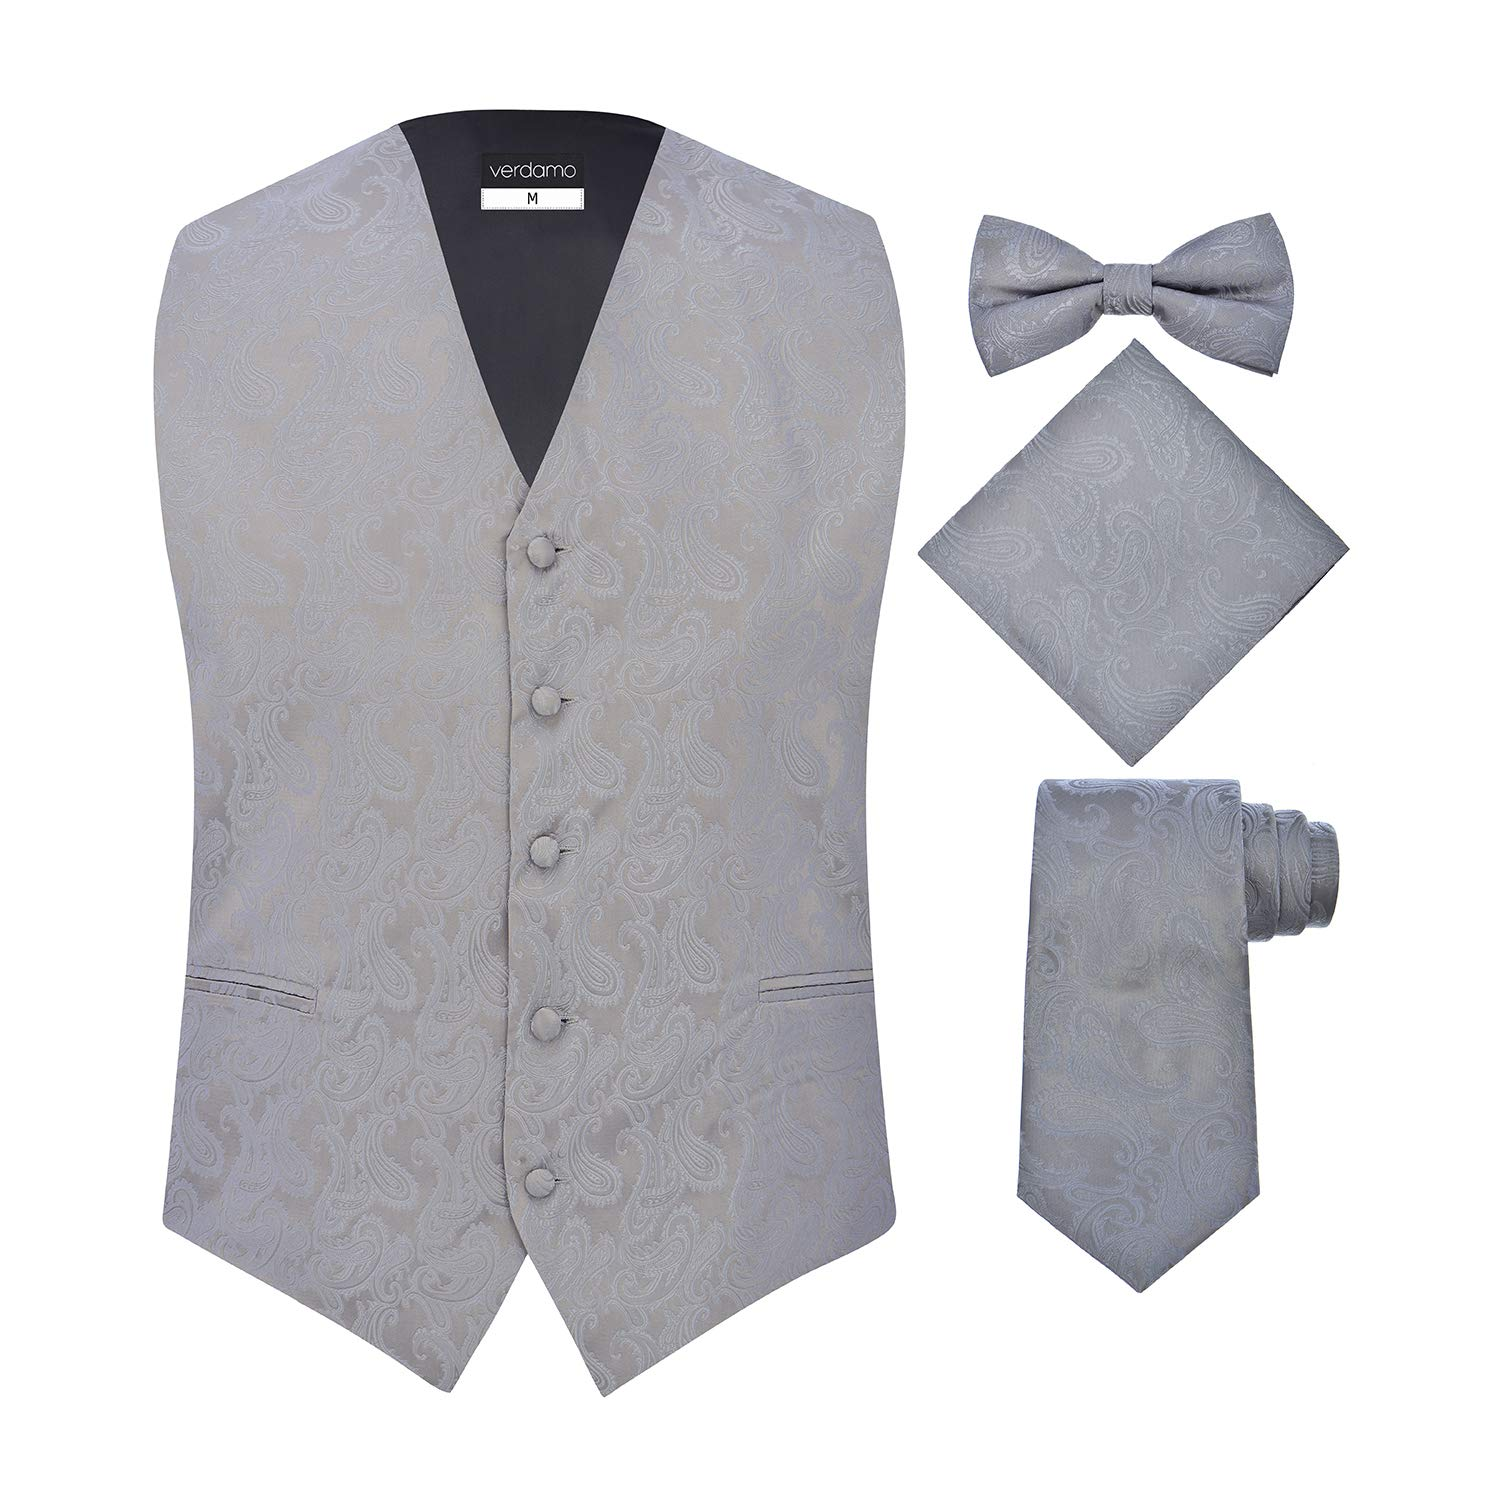 Men's 4 Piece Paisley Vest Set, with Bow Tie, Neck Tie & Pocket Hankie - (L (Chest 44), Silver)